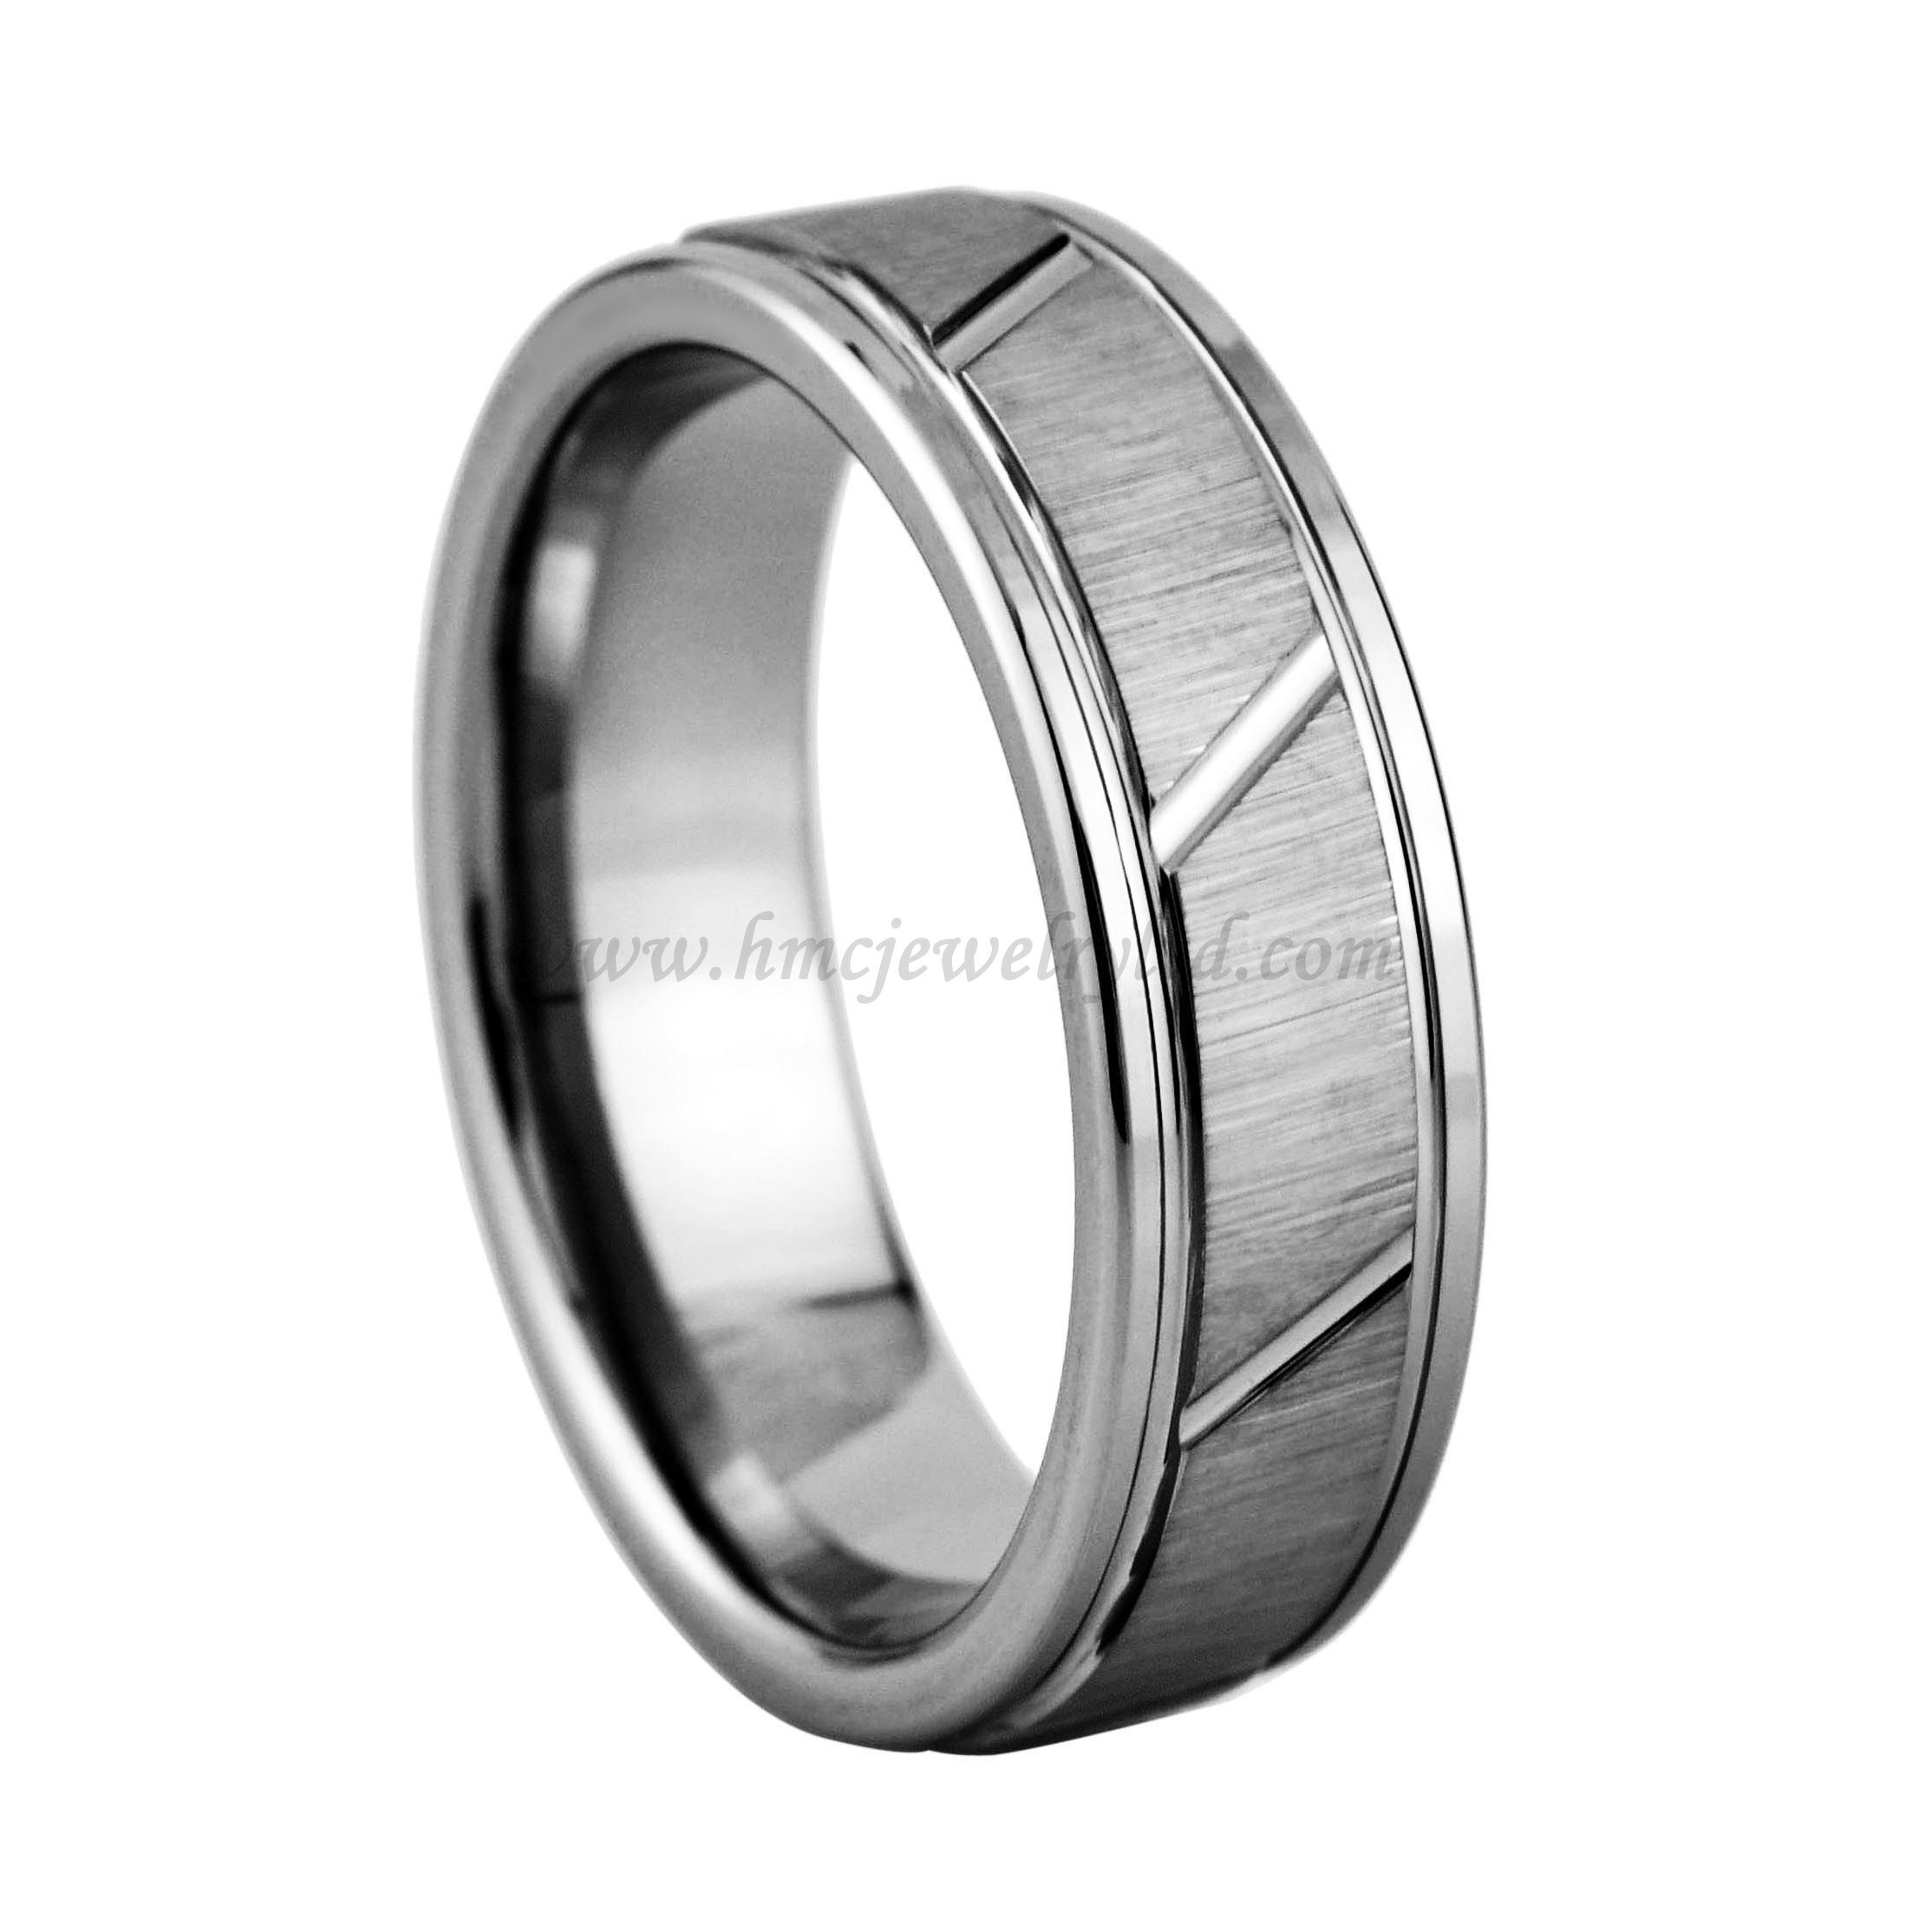 titanium plating carbide spo unique band koa tungsten rings conquerer conqueror w the products wedding ring